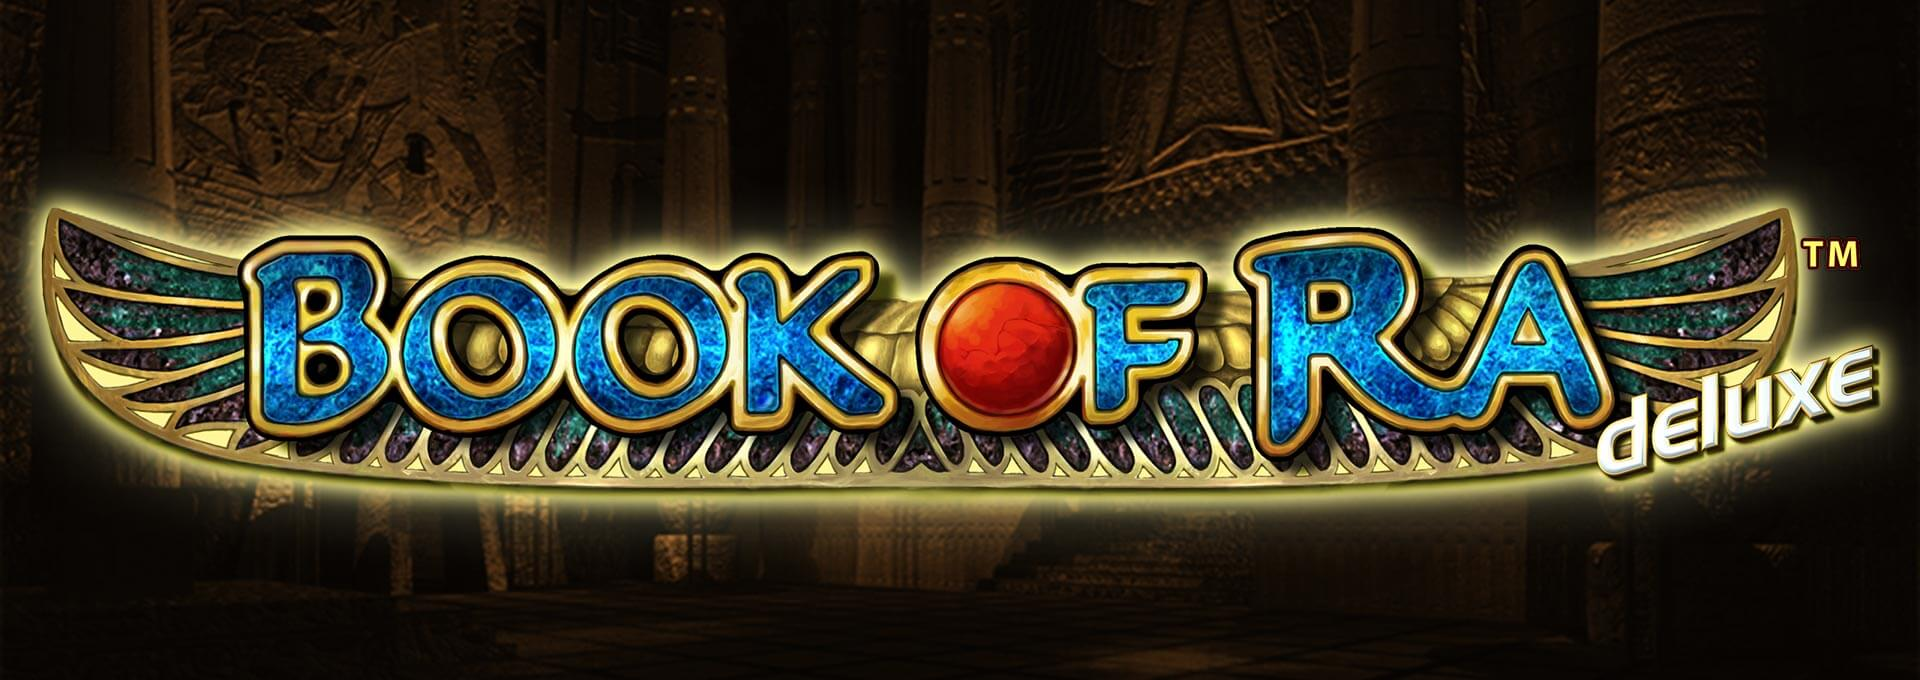 online geld verdienen casino book of ra deluxe download kostenlos